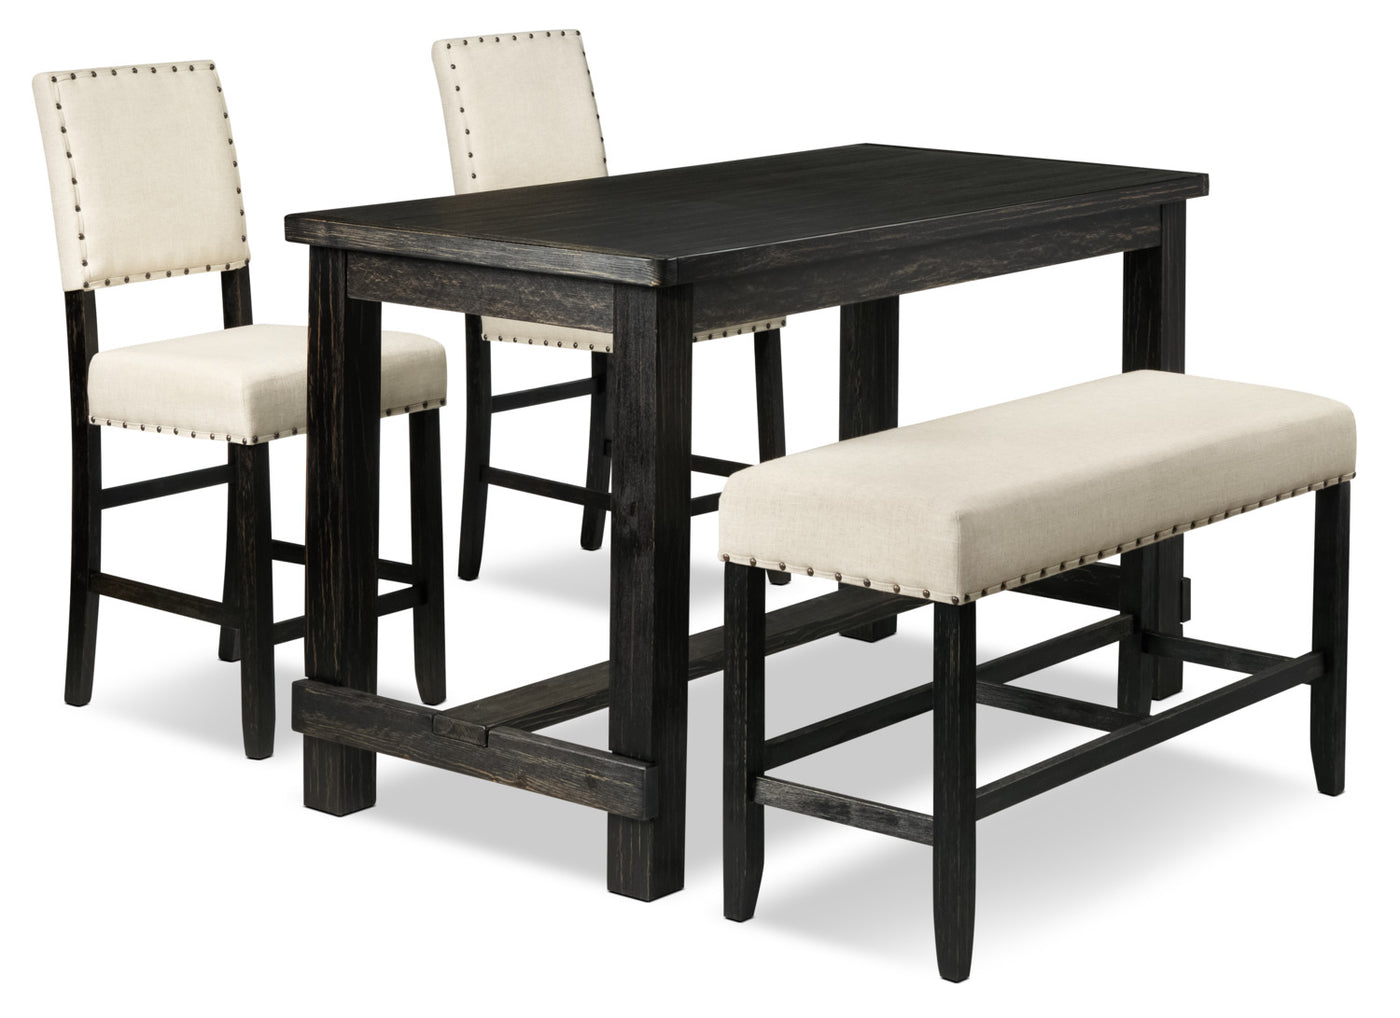 Astonishing Jackson 4 Piece Pub Height Dinette Set Dark Grey And Cream Dailytribune Chair Design For Home Dailytribuneorg